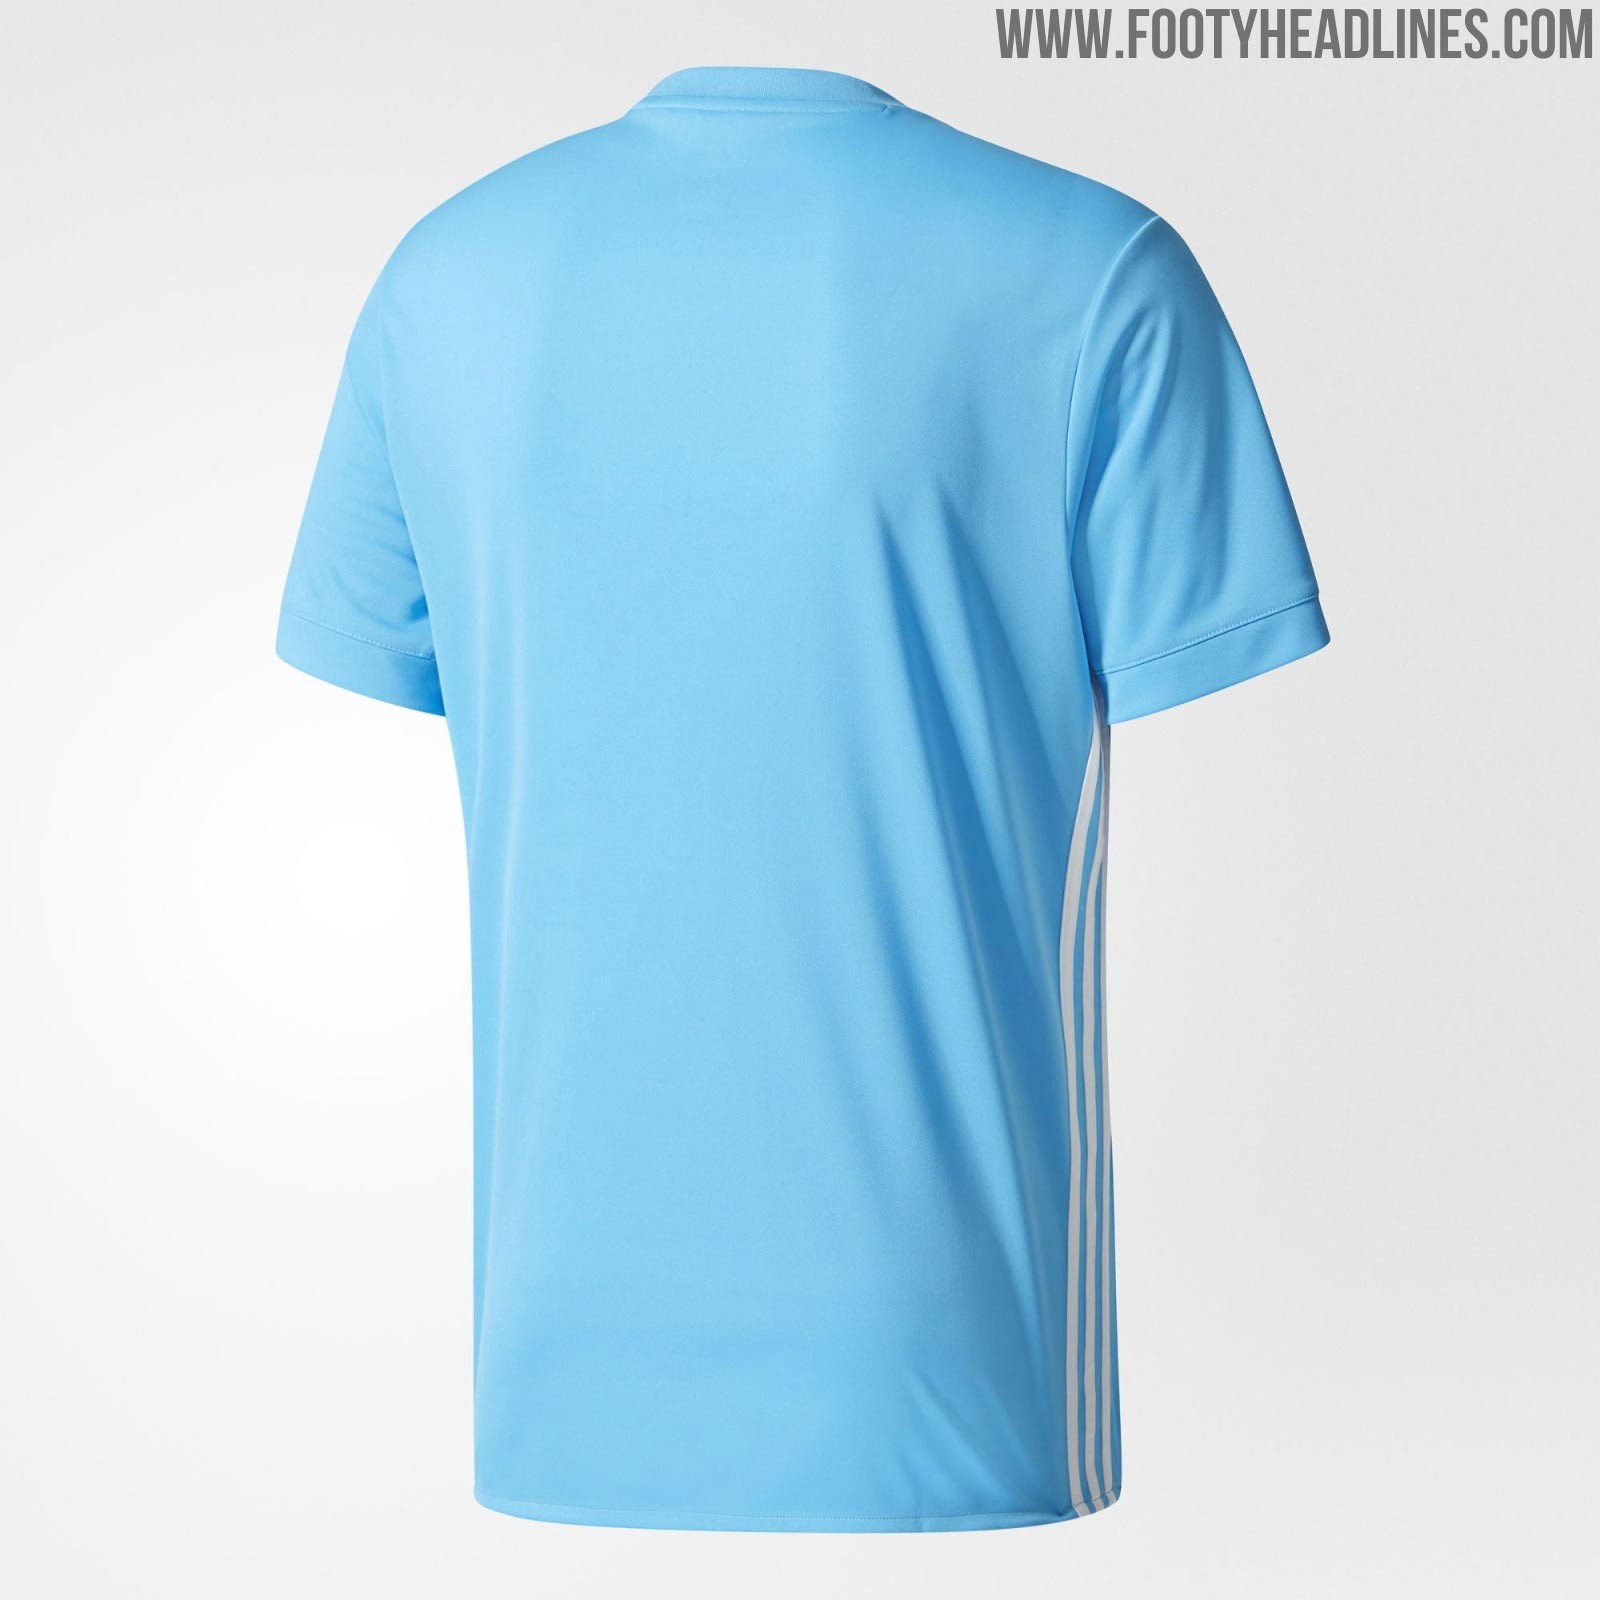 https://image.ibb.co/m3E4PF/Olympique_Marseille_away_kit_2.jpg